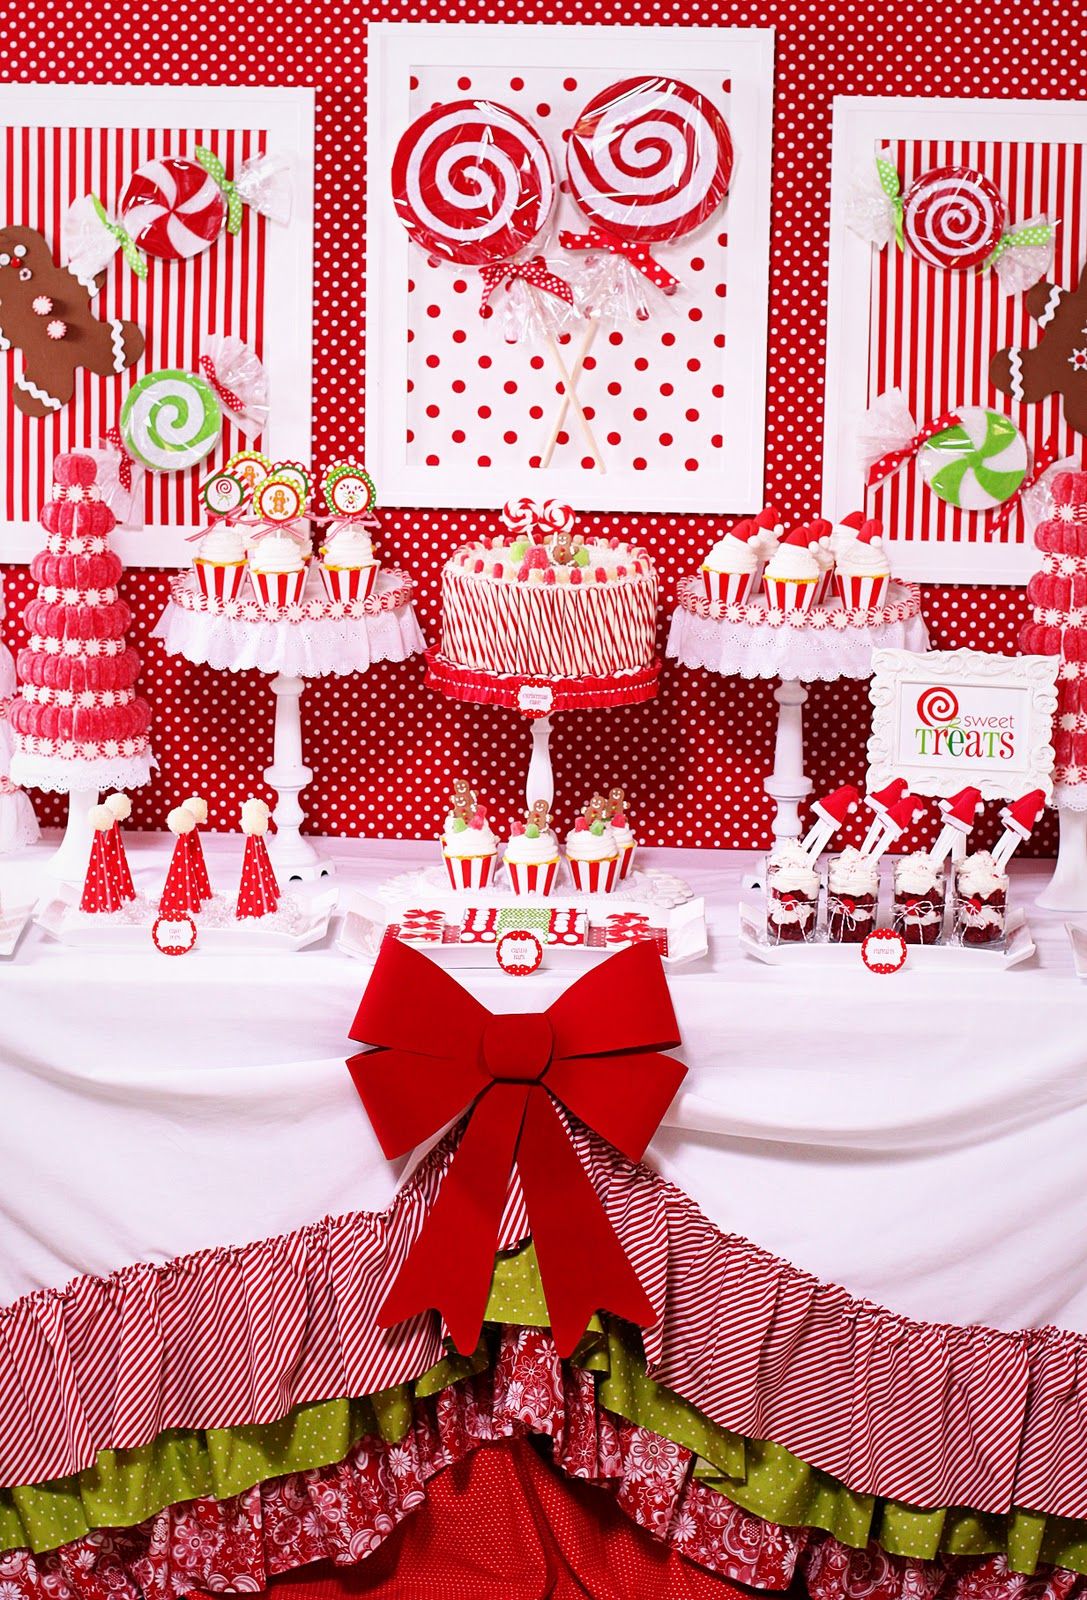 Amanda's Parties To Go: Candy Christmas Dessert Table